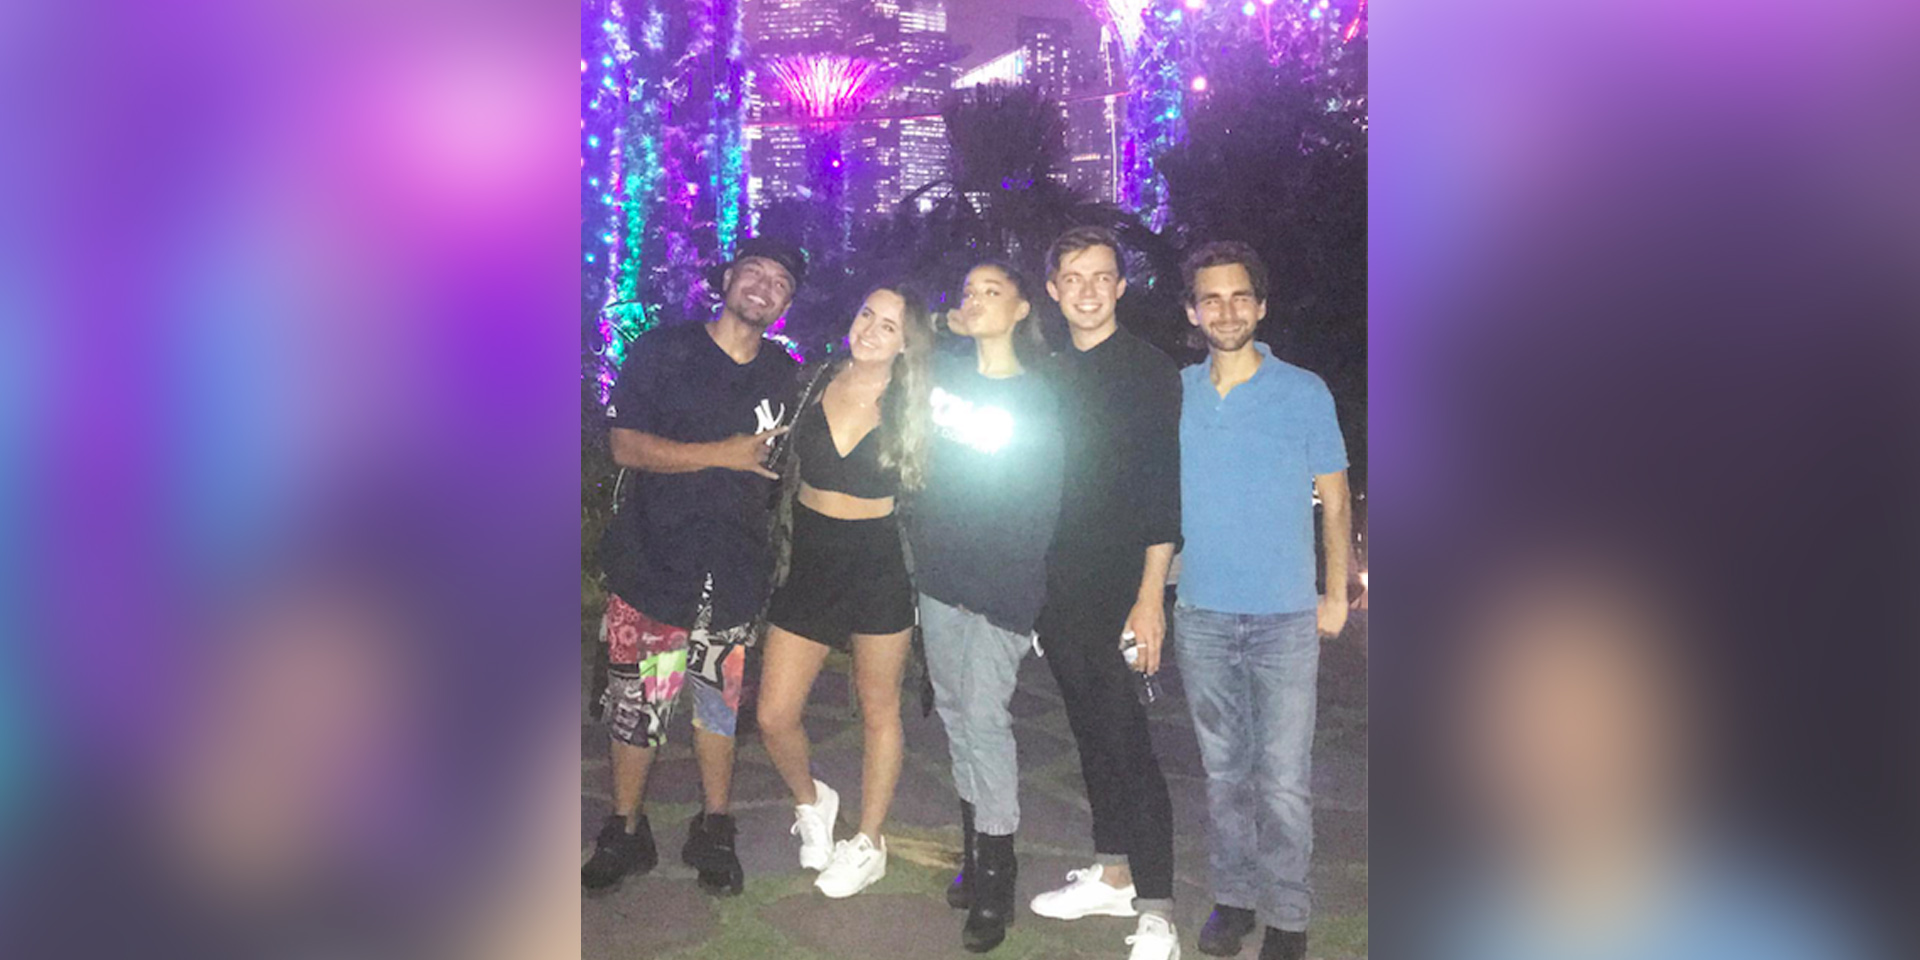 Ariana Grande Was Singing Show Tunes At Gardens By The Bay And No One  Noticed